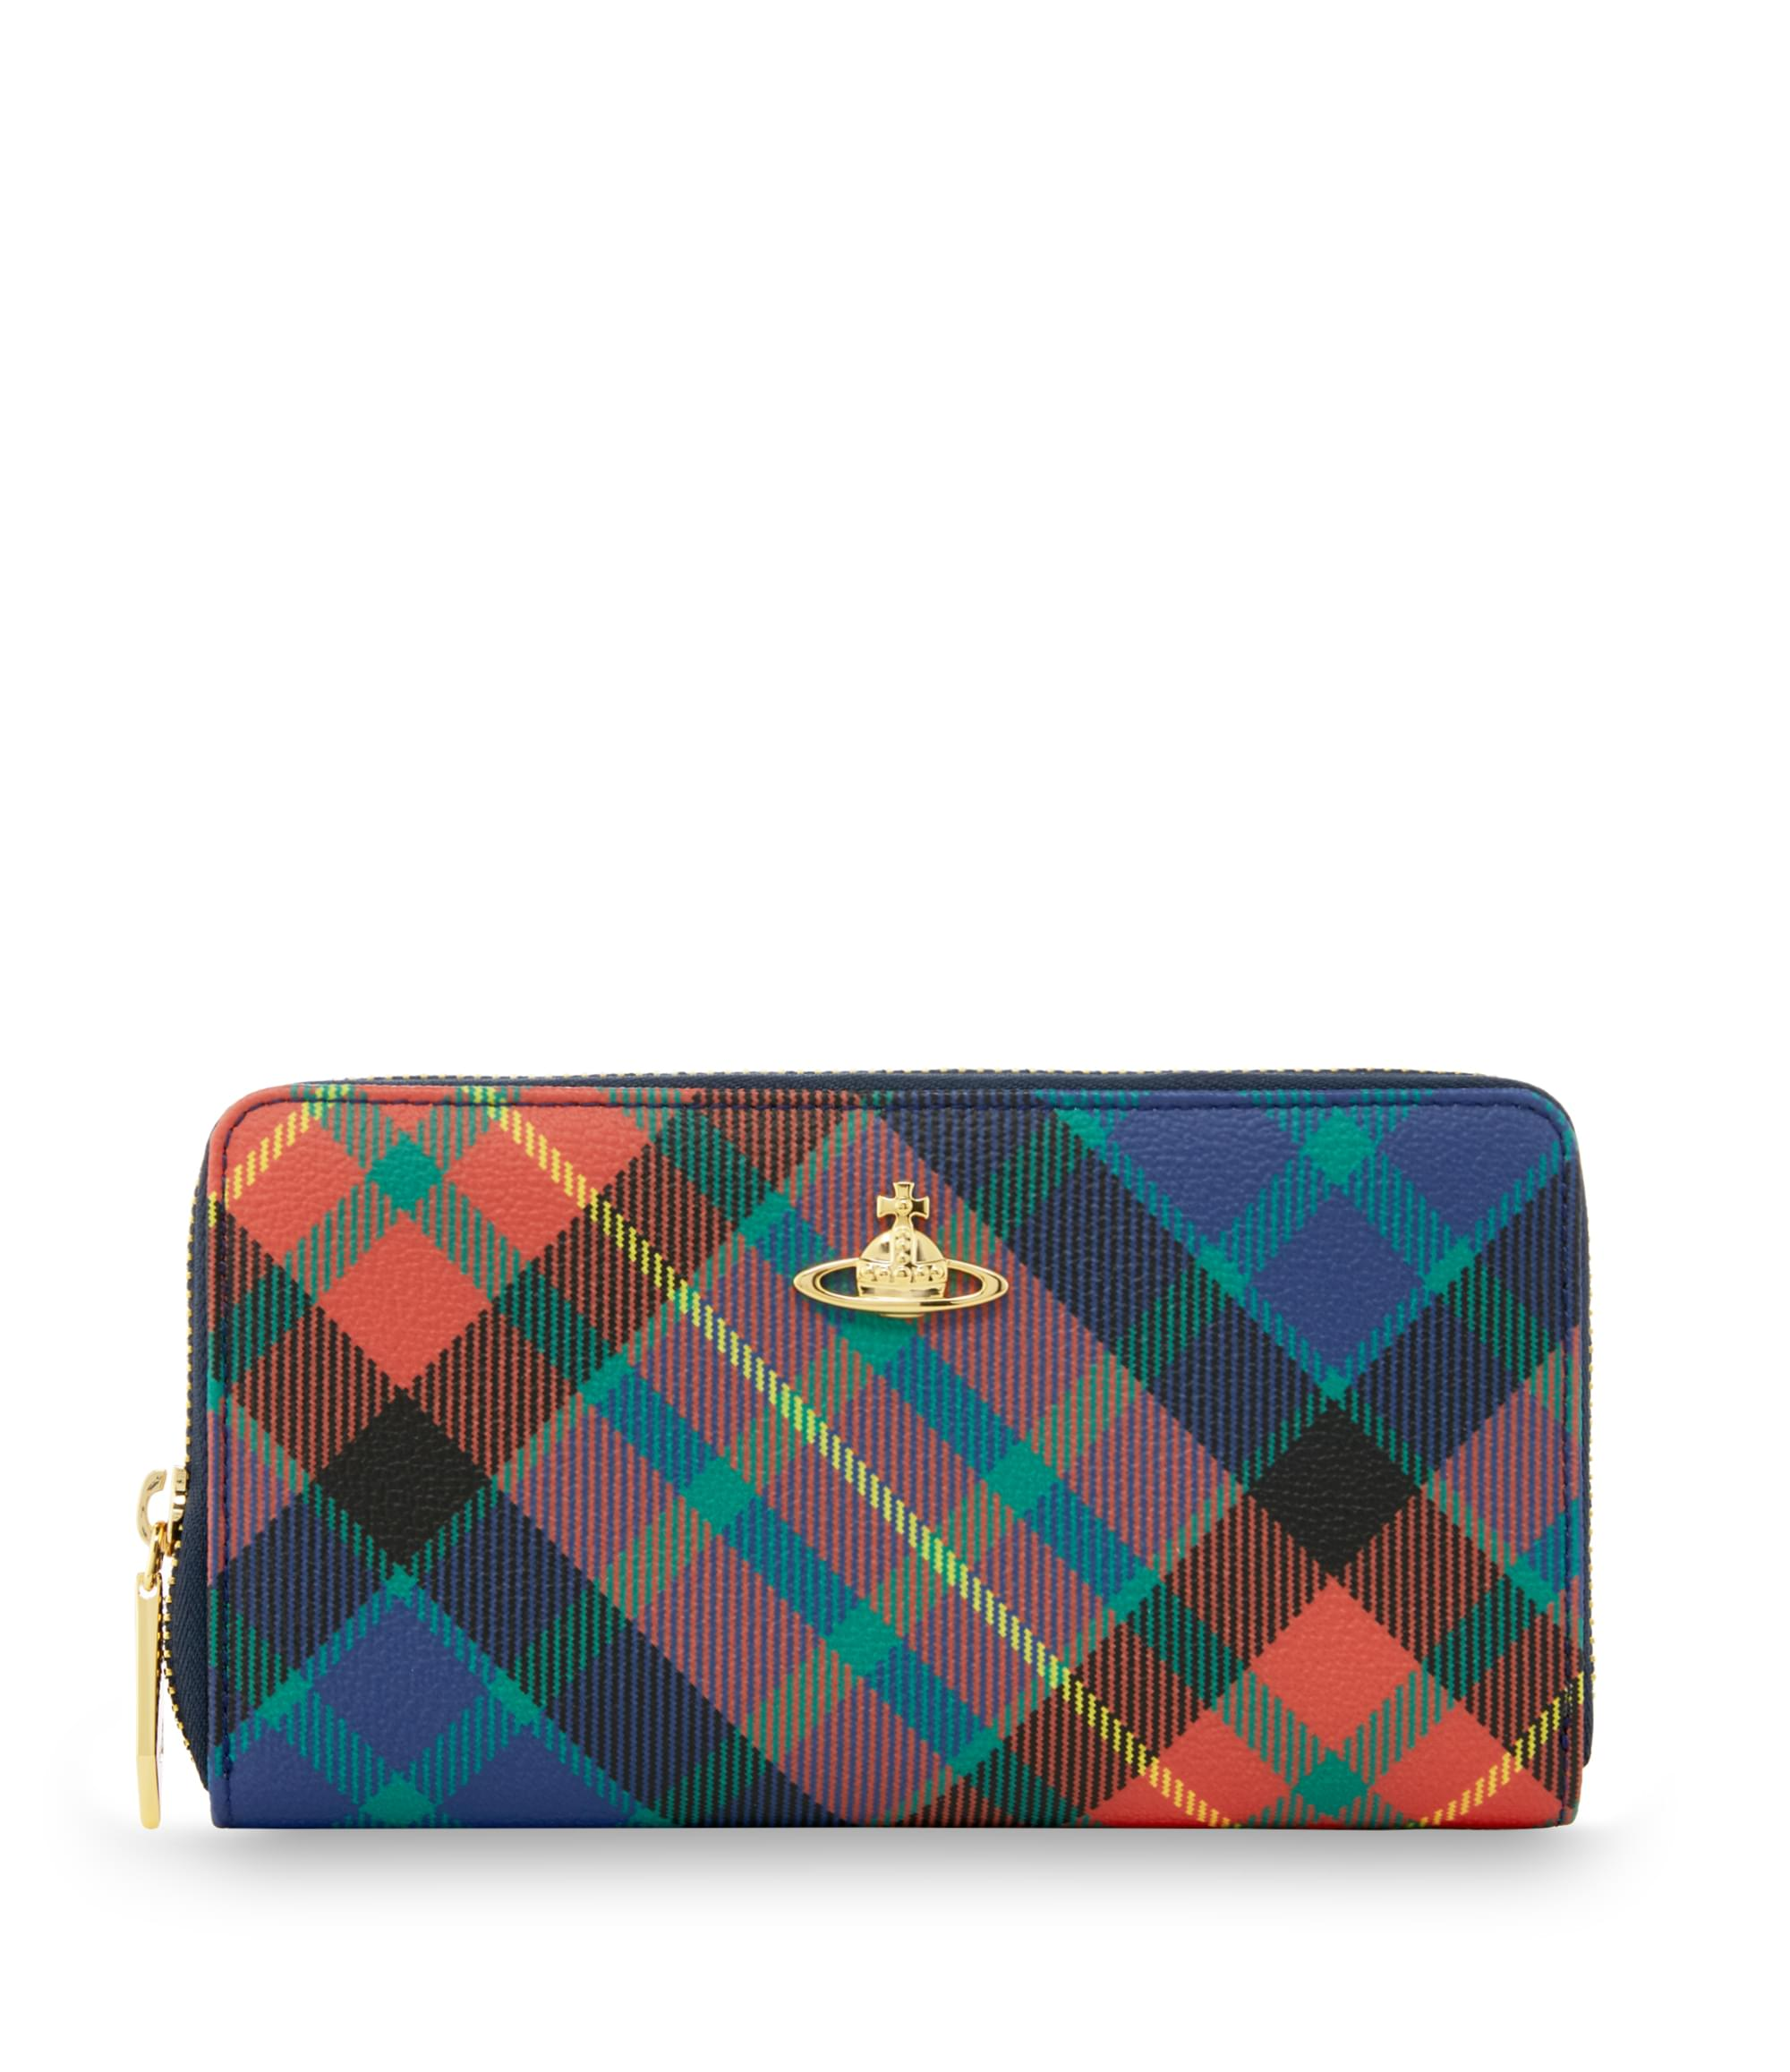 Vivienne Westwood Mac Charles Derby Zip Purse 5140